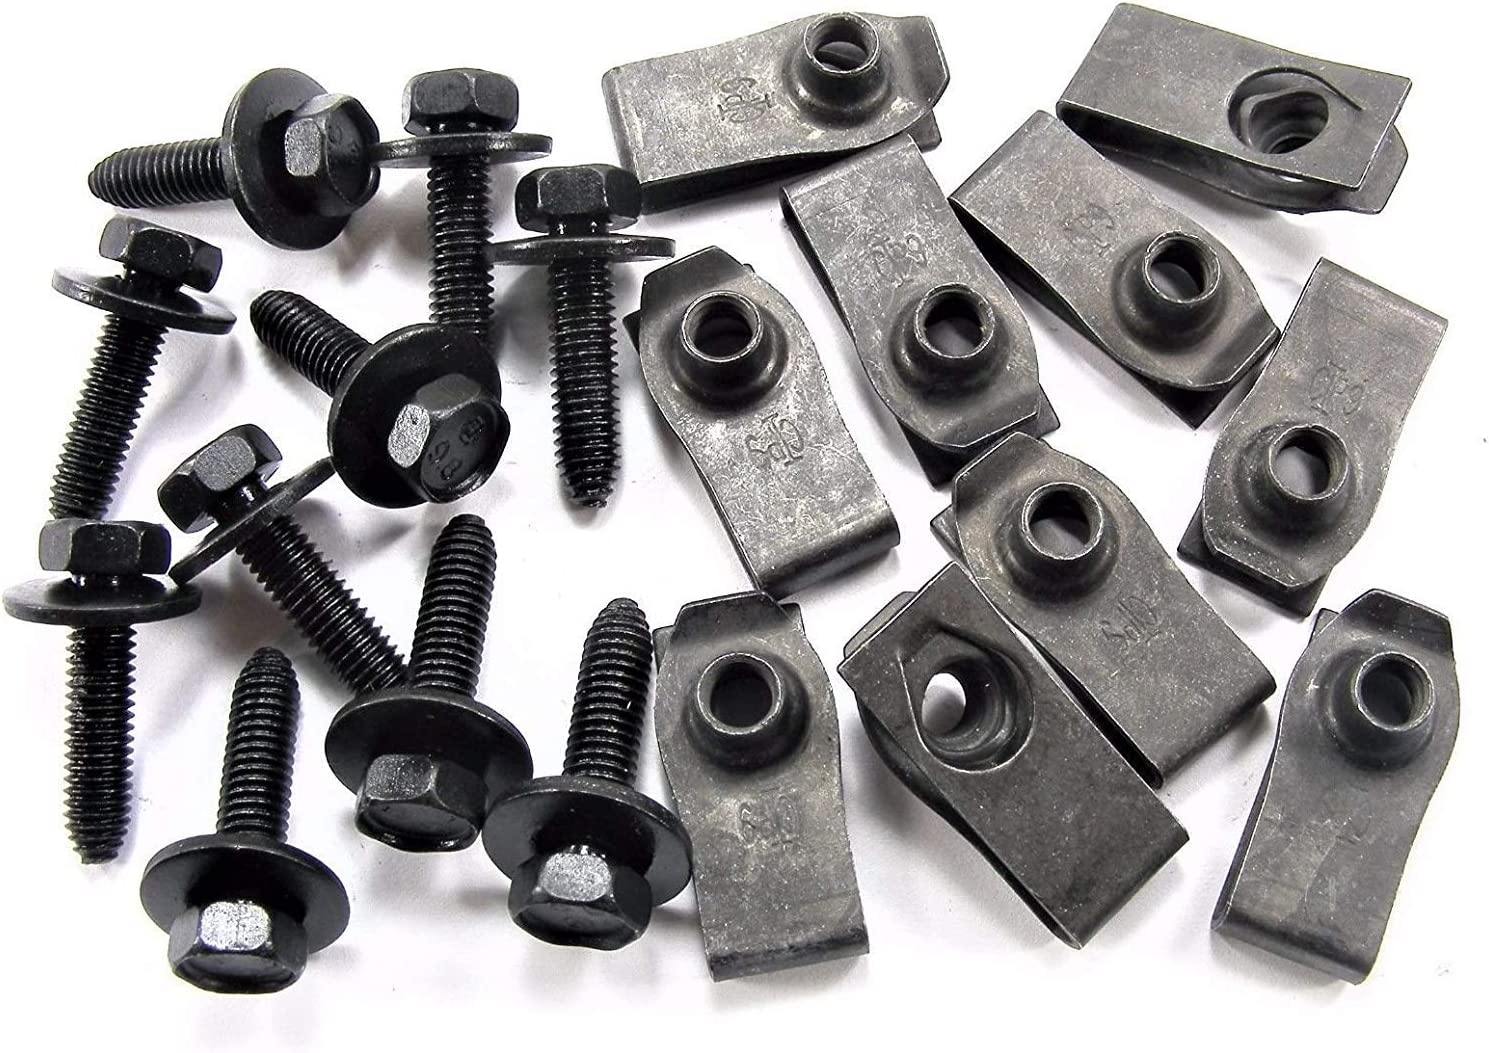 Online Auto Supply for Gorgeous GM Truck U-nut Clips- Bolts M6-1.0 Body sale